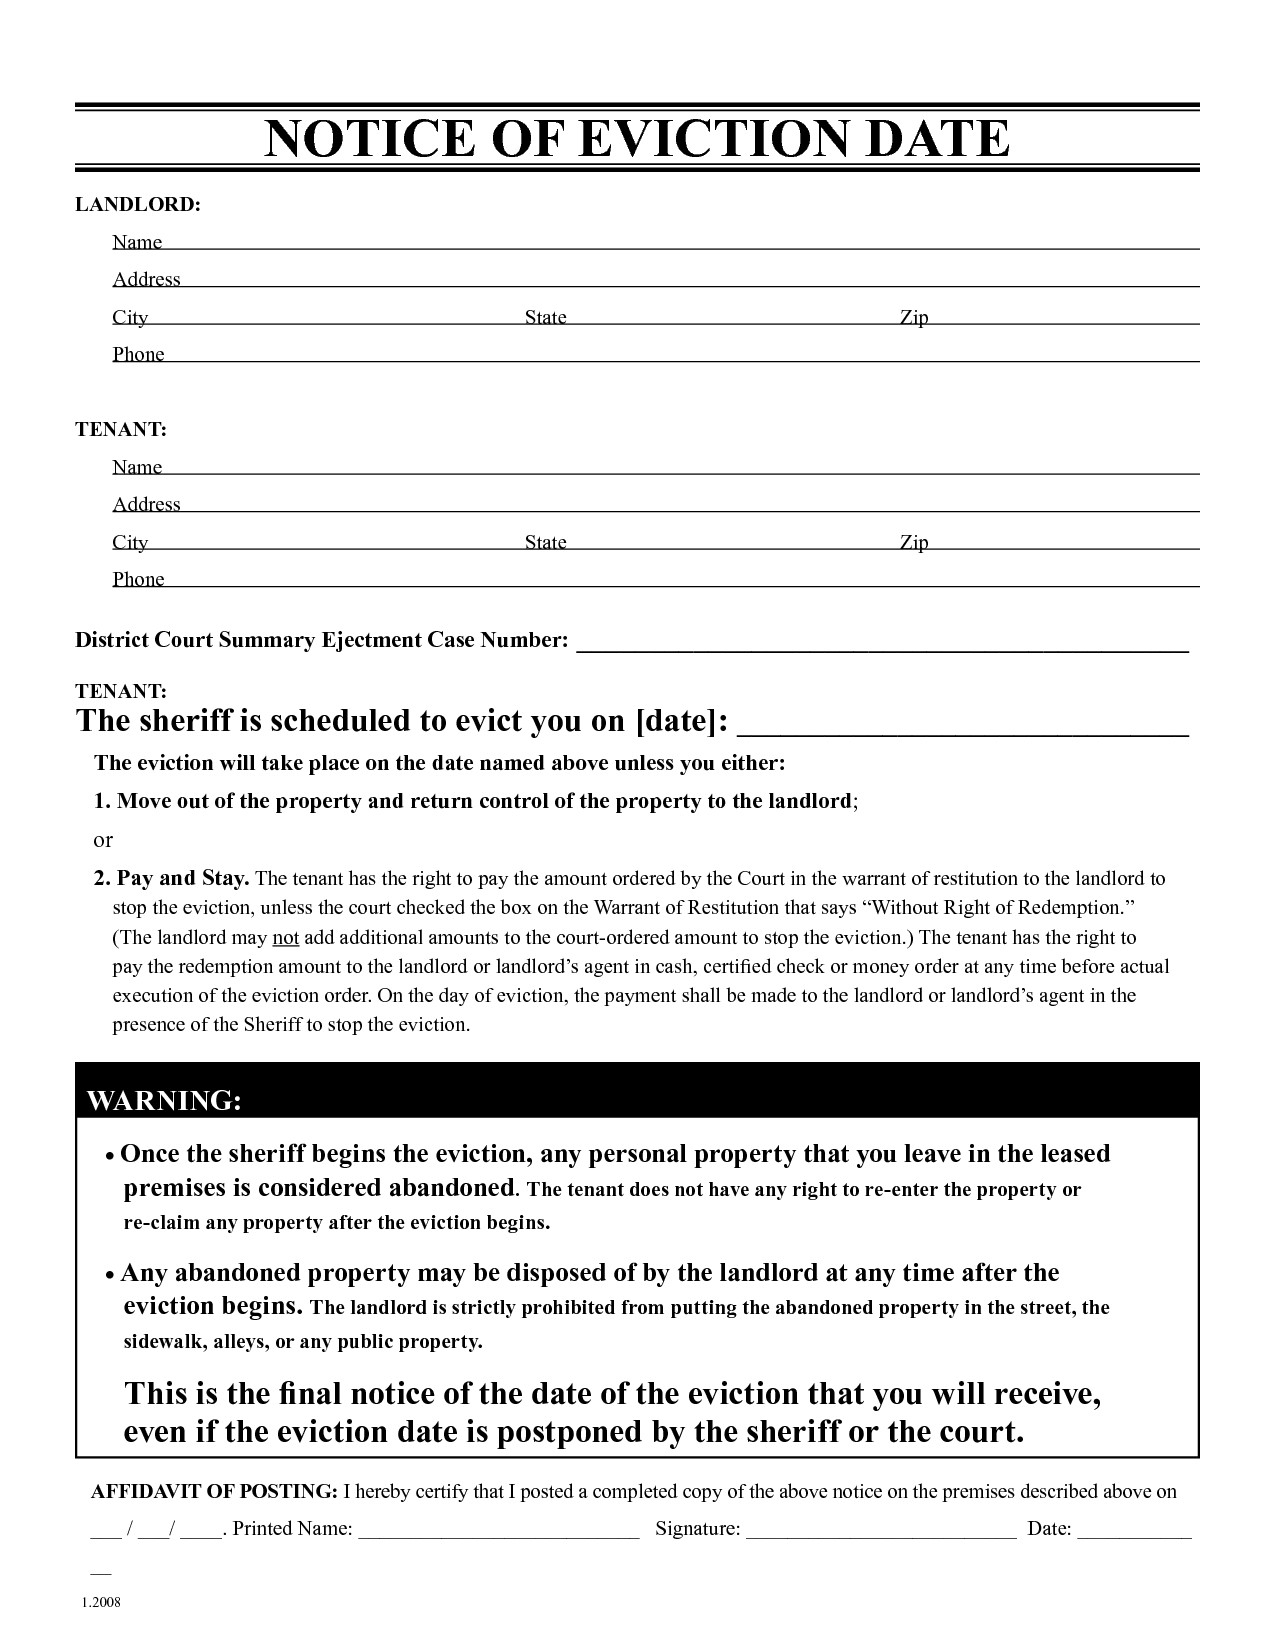 Eviction Warning Letter Template - Free Eviction Notice form New Free Printable Eviction Notice